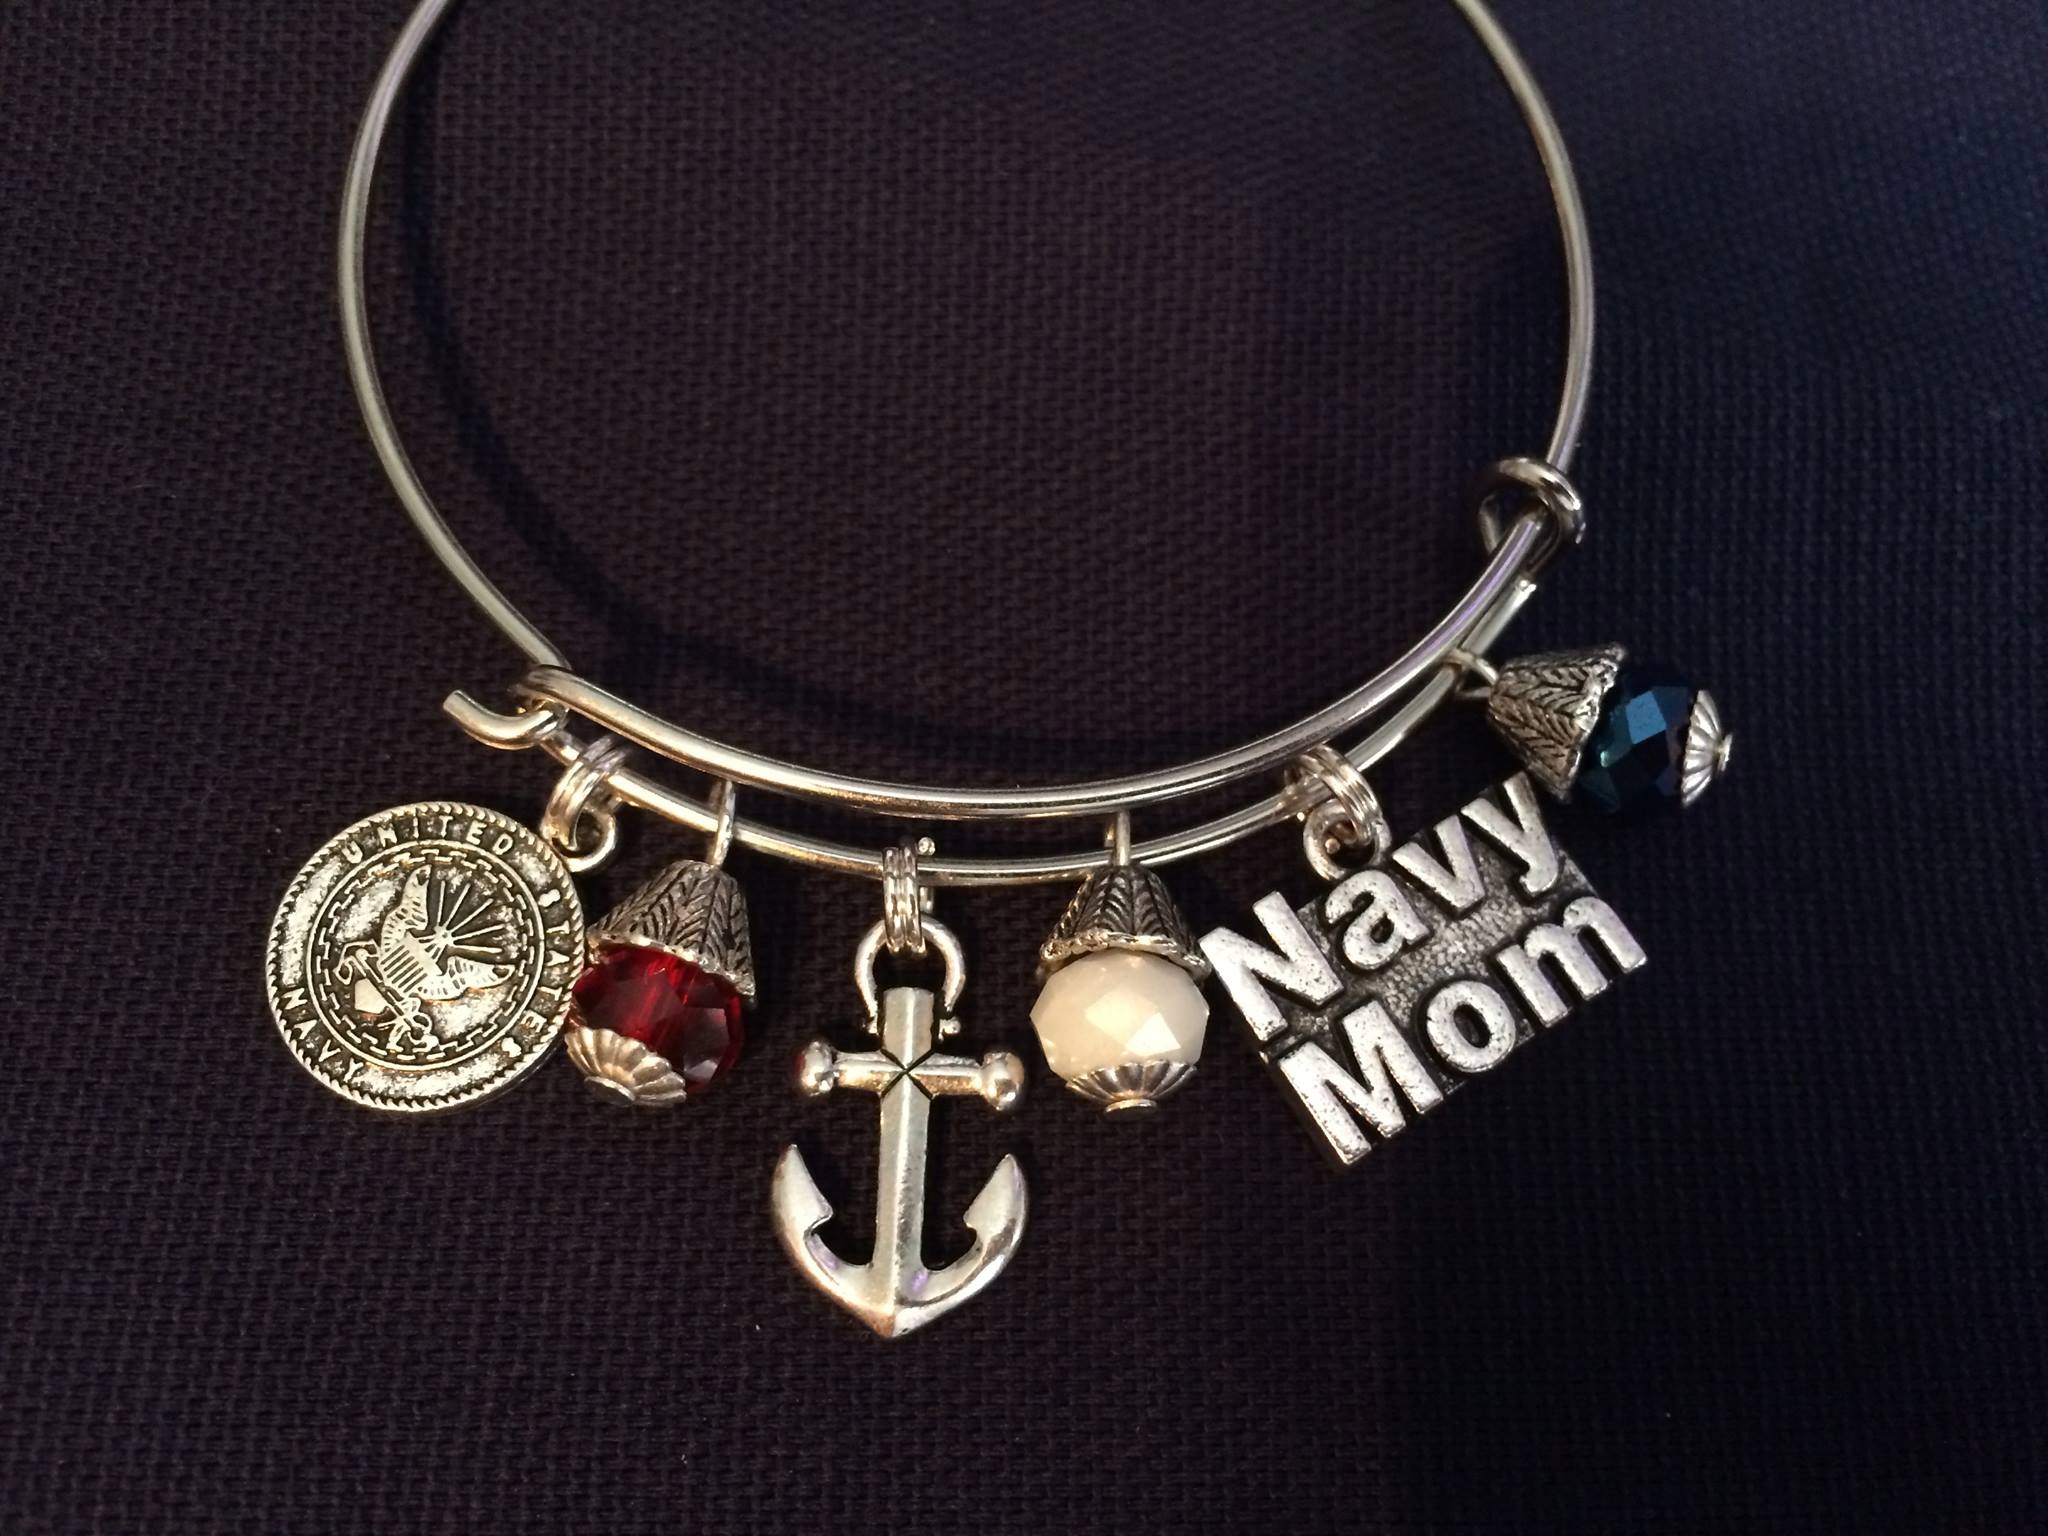 US Navy Themed Pop Top Bracelet with Charm